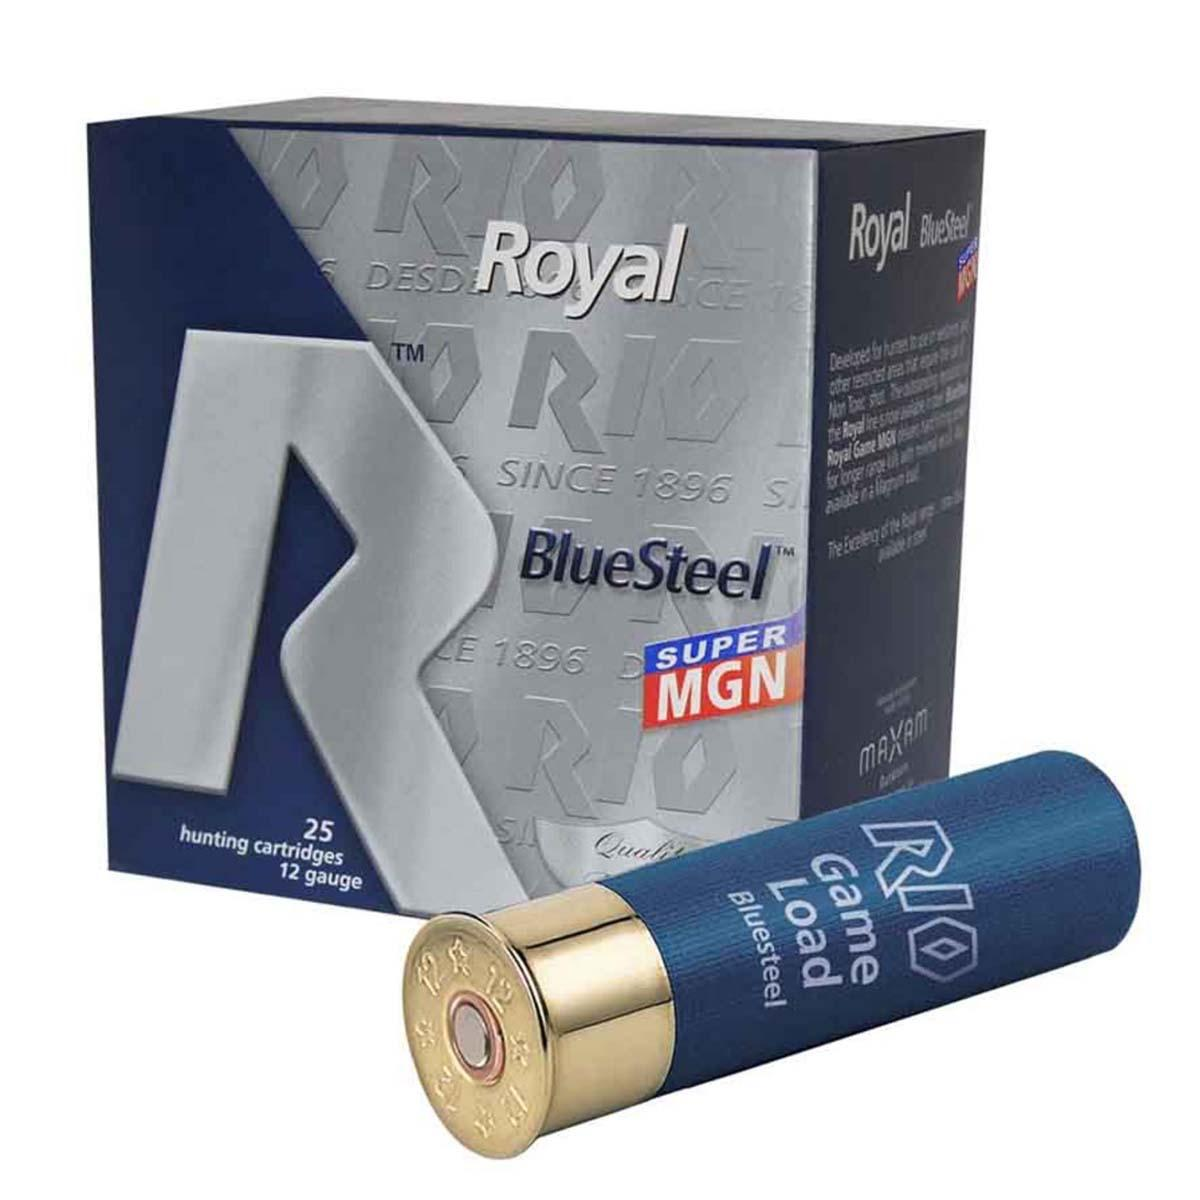 "Rio RBSSM40 Royal Blue Steel Super Magnum 40, 12 Gauge 3 1/2"" 1 3/8oz 1480FPS Max DRAM"